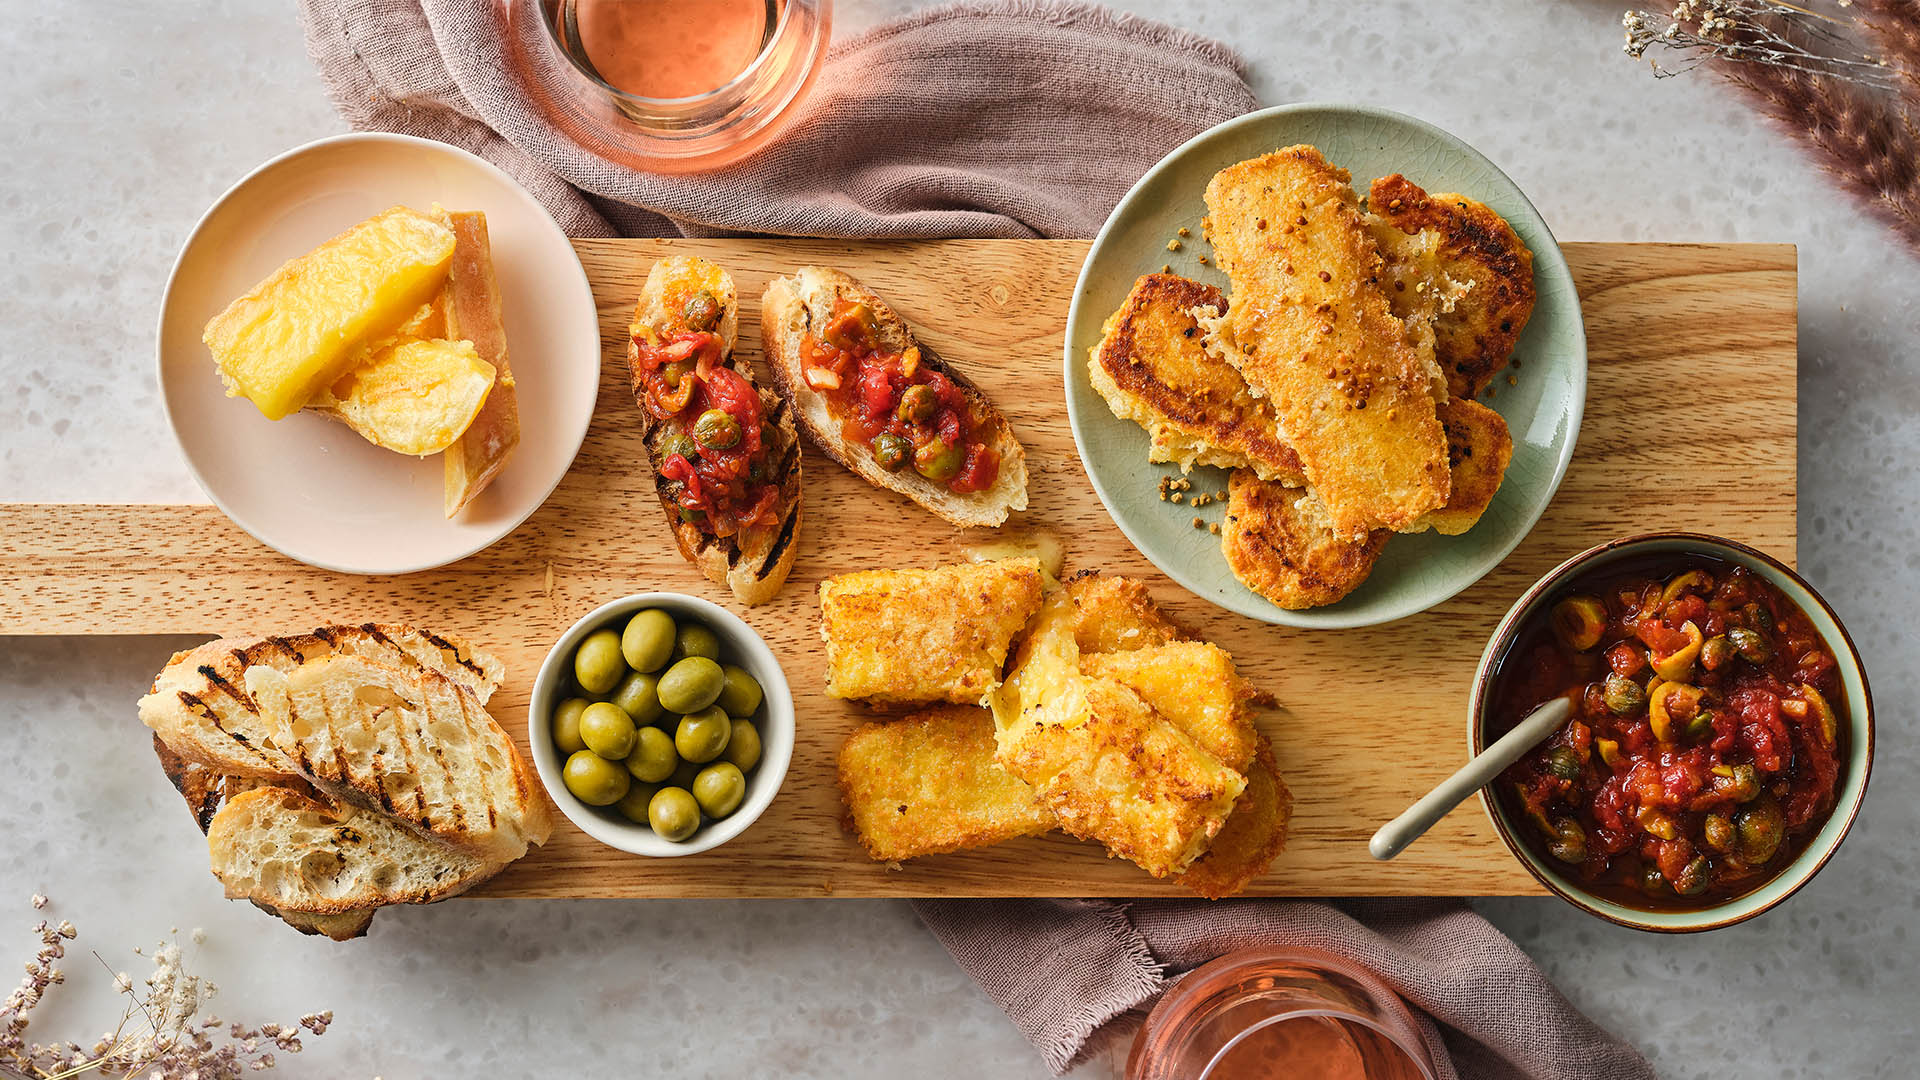 A cheeseboard features pan-fried and breaded and deep fried Ontario Artisan cheese on a cheeseboard surrounded by stewed tomato tapenade and garlic crostini.